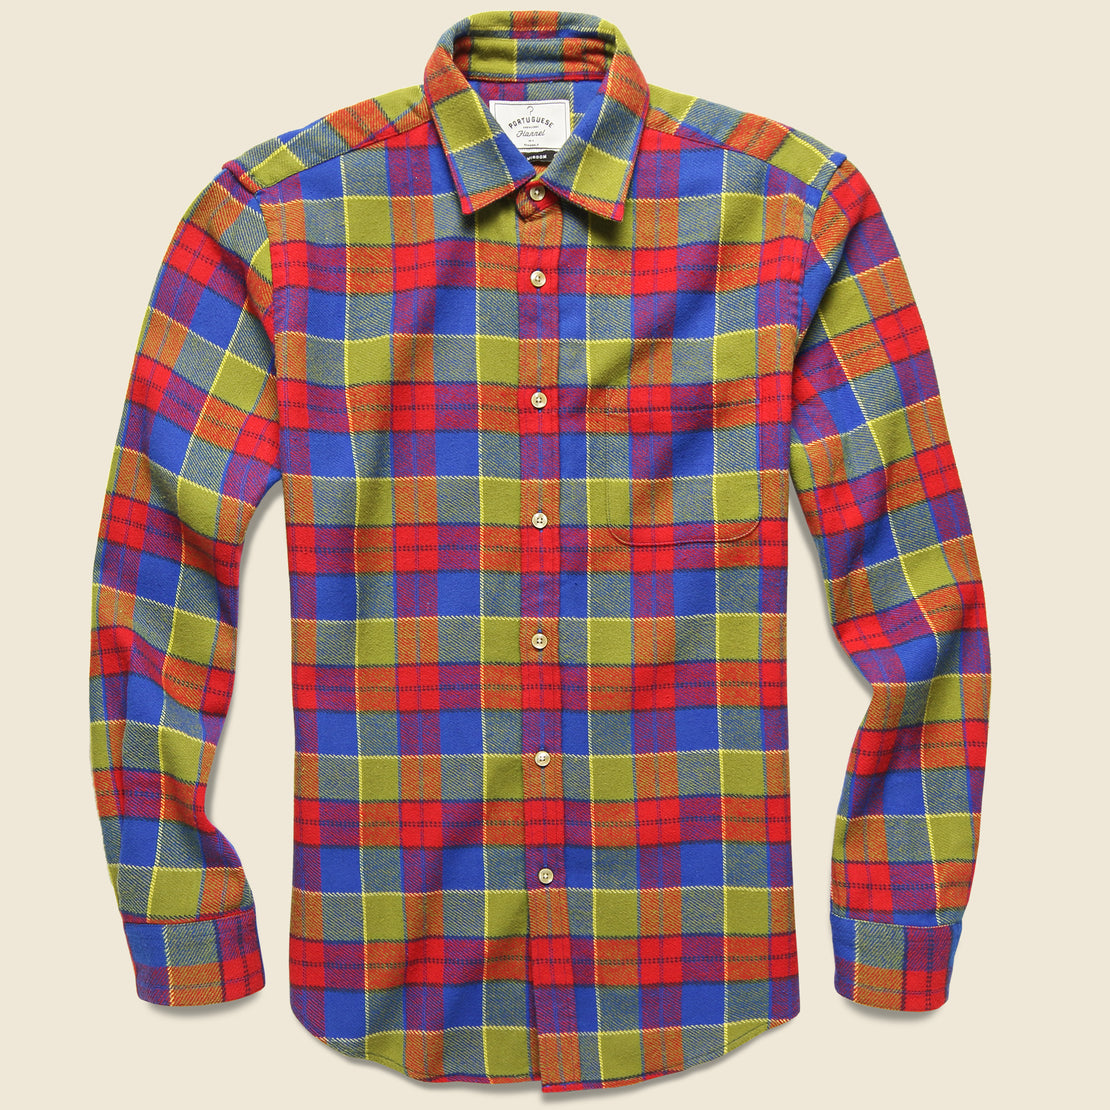 Portuguese Flannel Nebraska Check Flannel - Red/Green/Blue